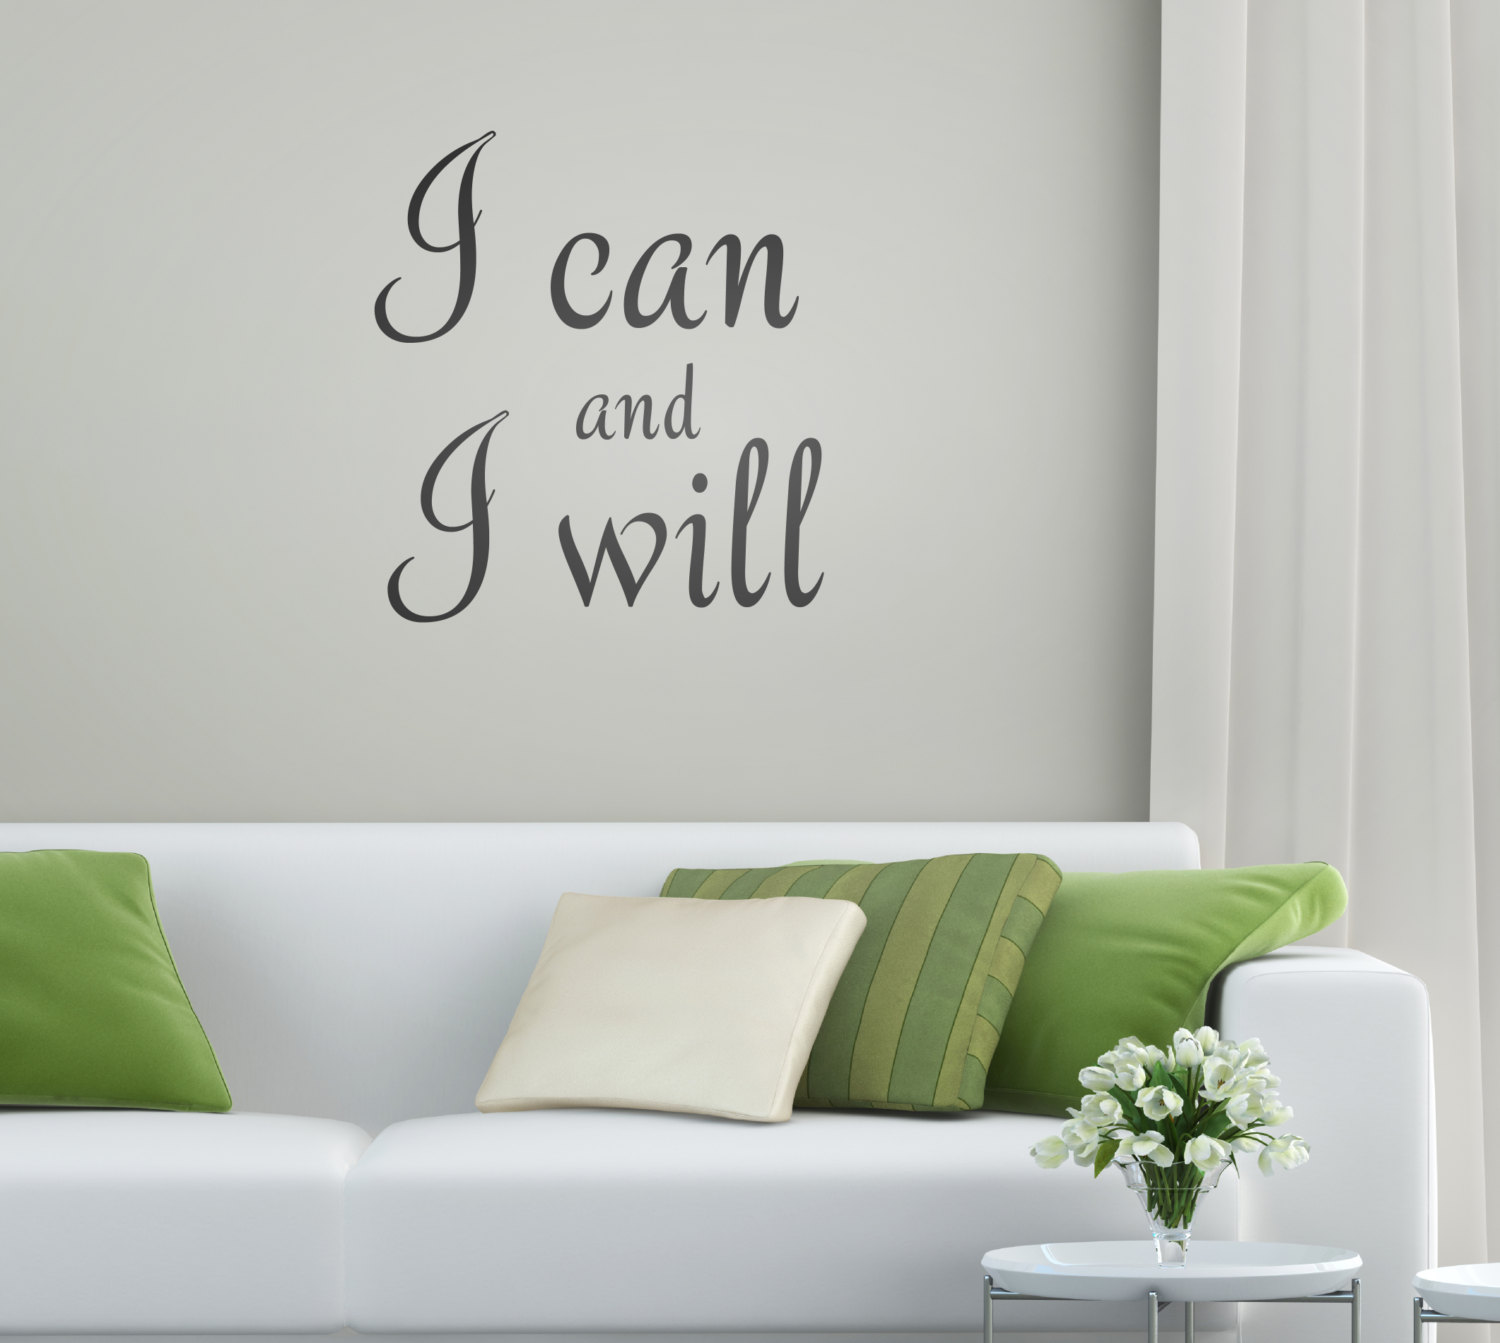 I Can and I Will Motivational Wall Sticker - Quotes and Words Wall ...